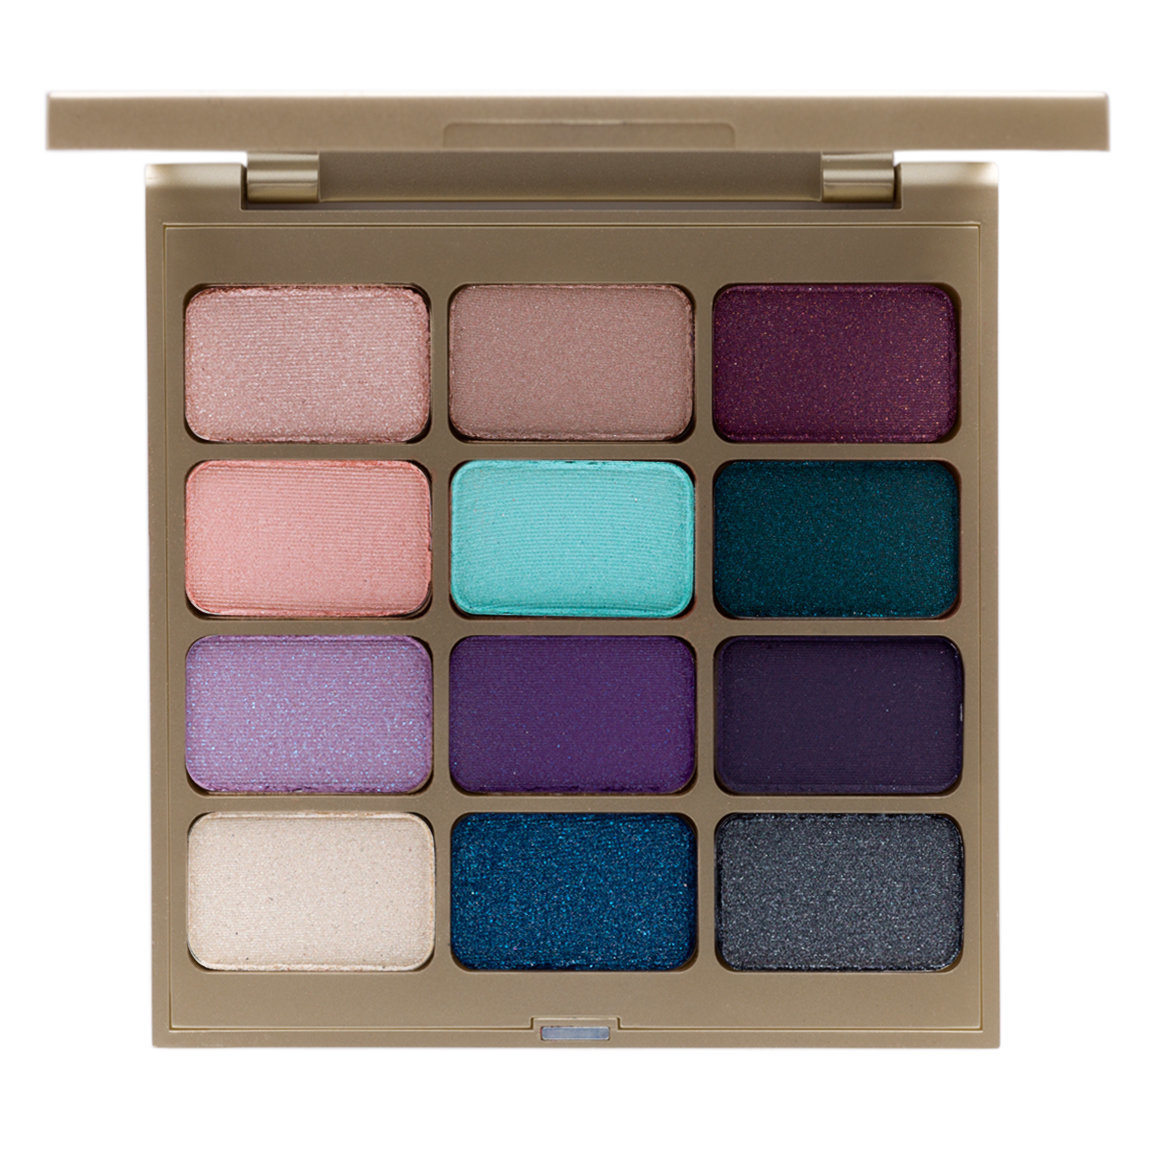 Stila Eyes Are The Window Shadow Palette Body alternative view 1 - product swatch.